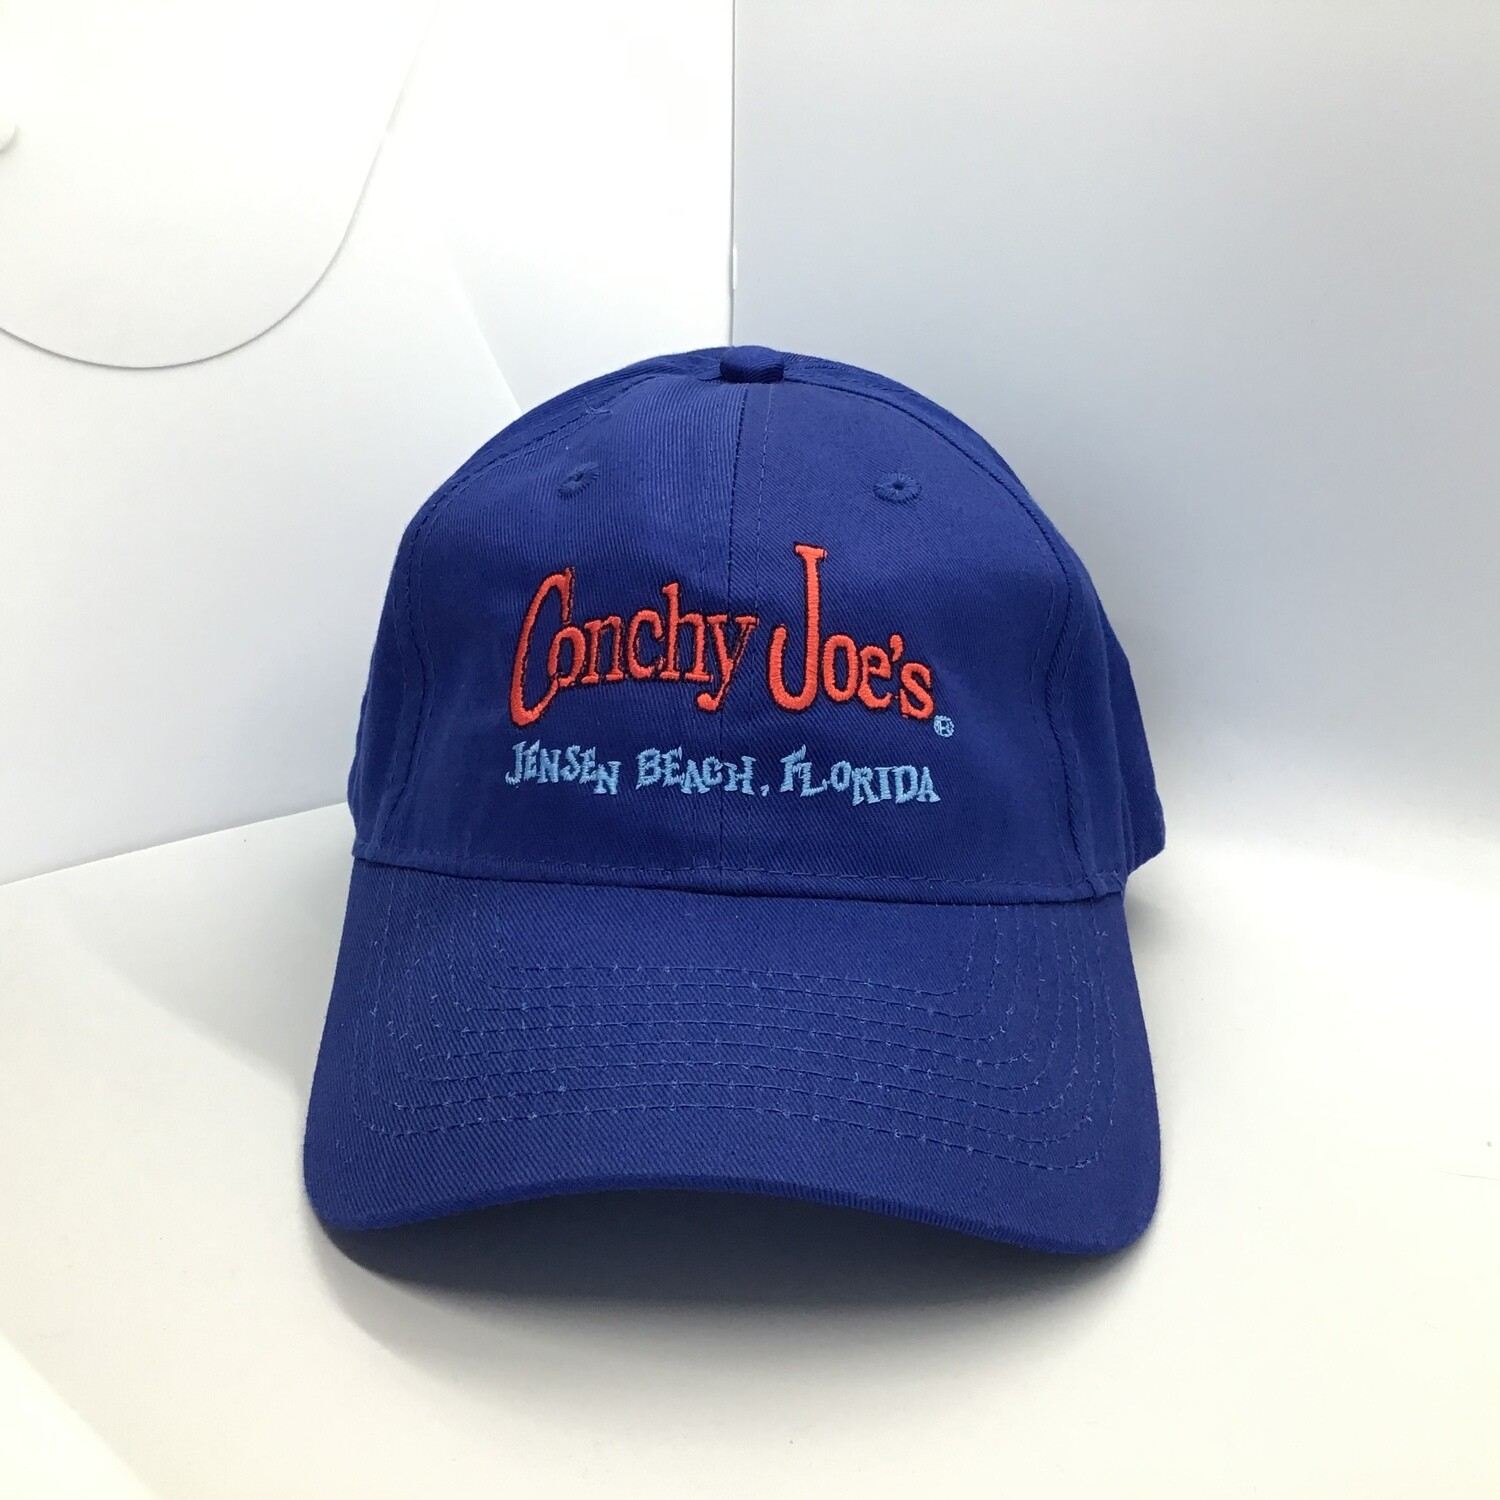 Cj's Royal Blue Adjustable Baseball Cap